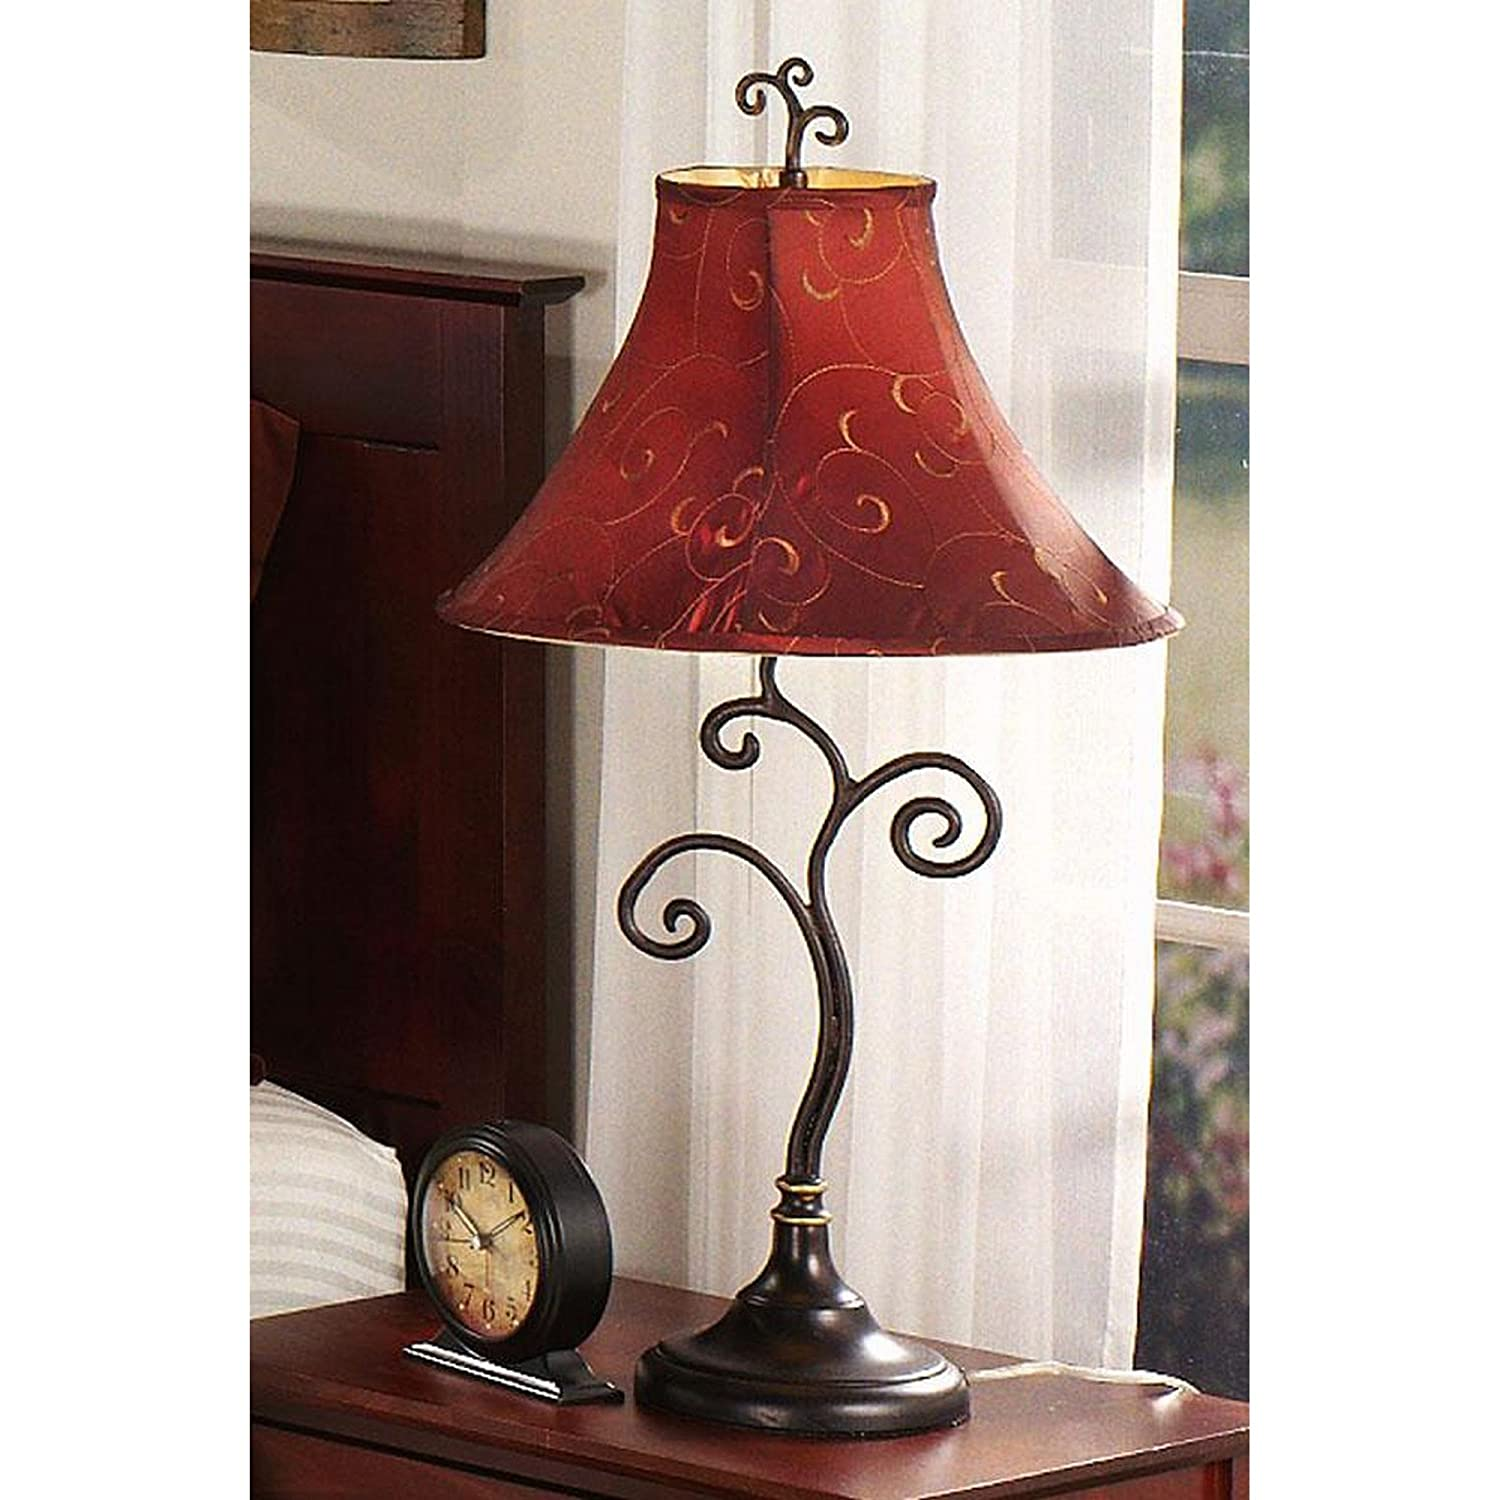 Kenroy home richardson table lamp bronze floor lamp amazon aloadofball Images